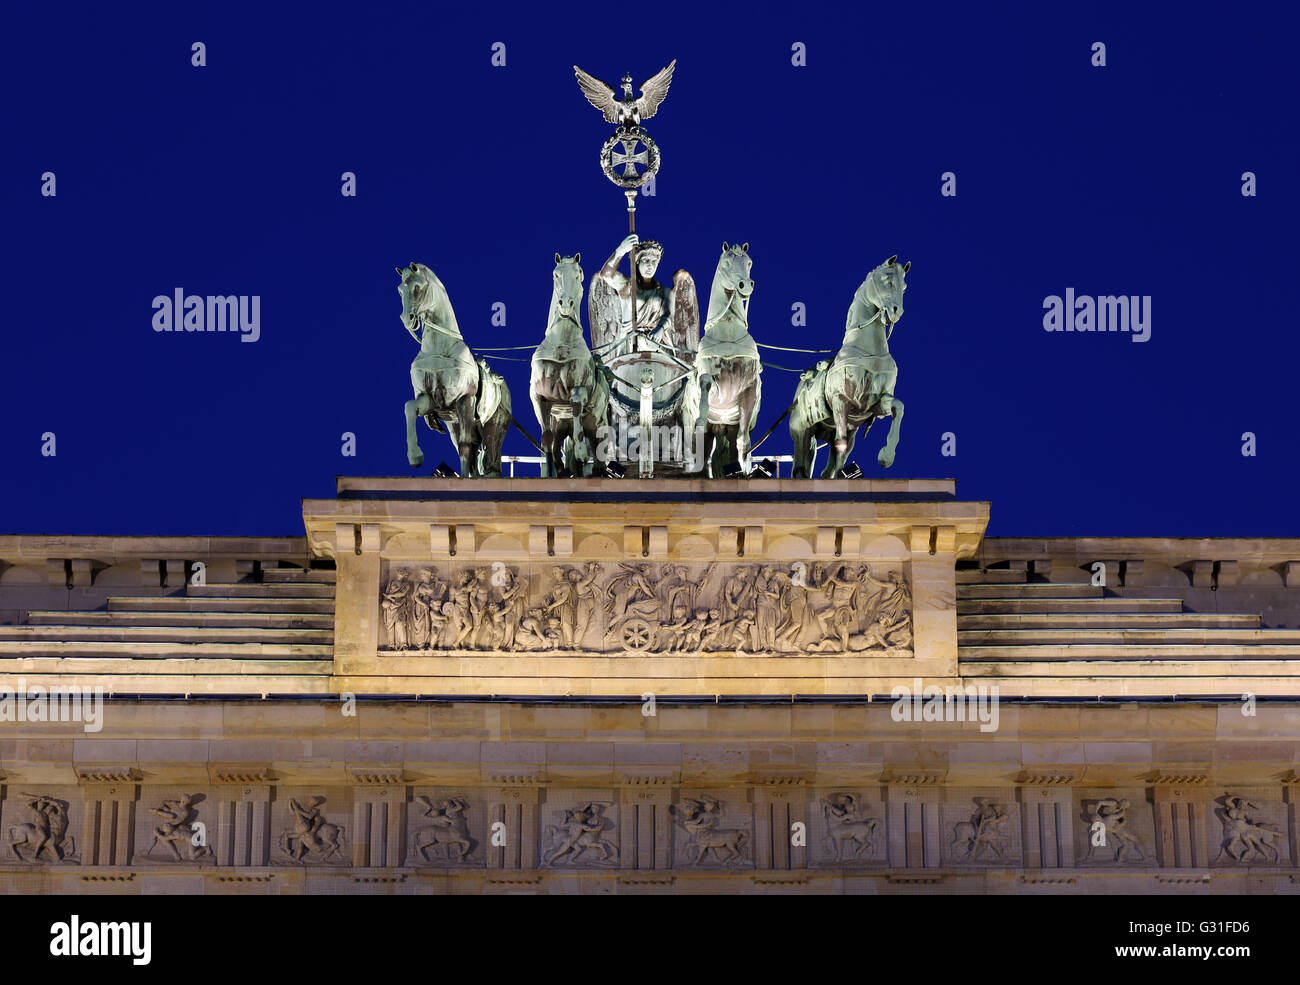 Berlin, Germany, the Quadriga on the Brandenburg Gate to the Blue Hour - Stock Image